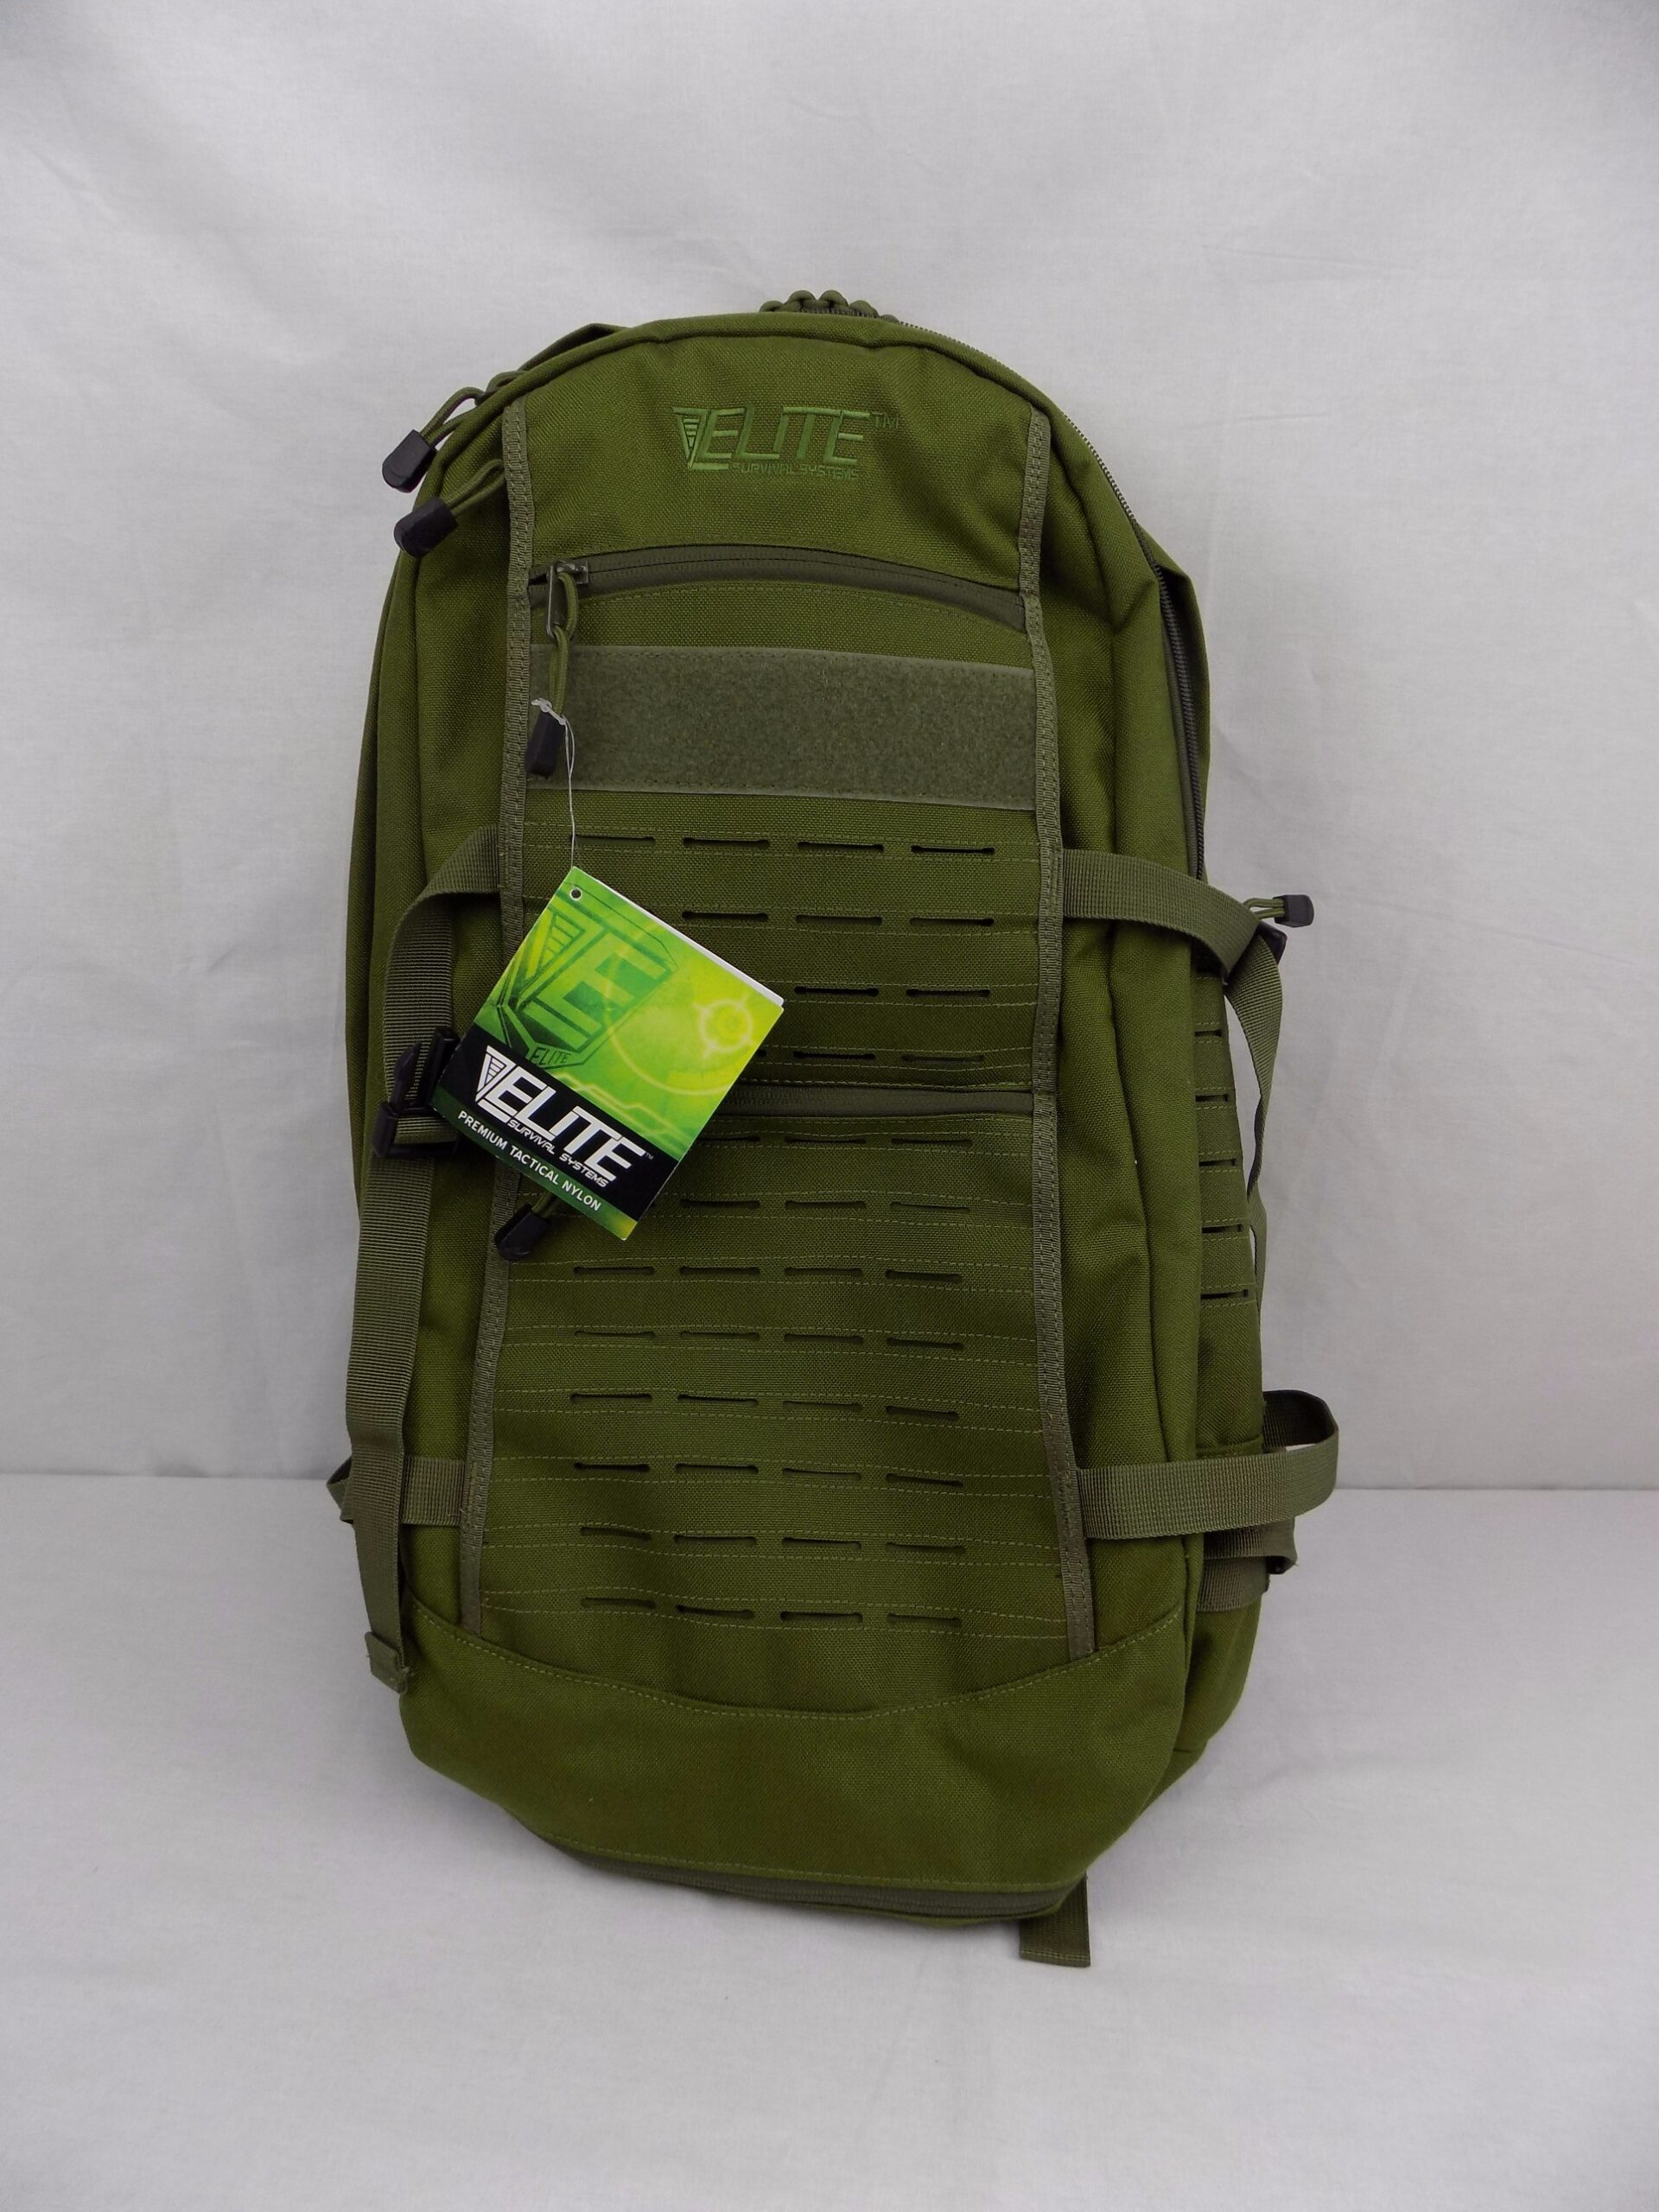 Elite Survival Systems Mission Pack 3 Day Backpack